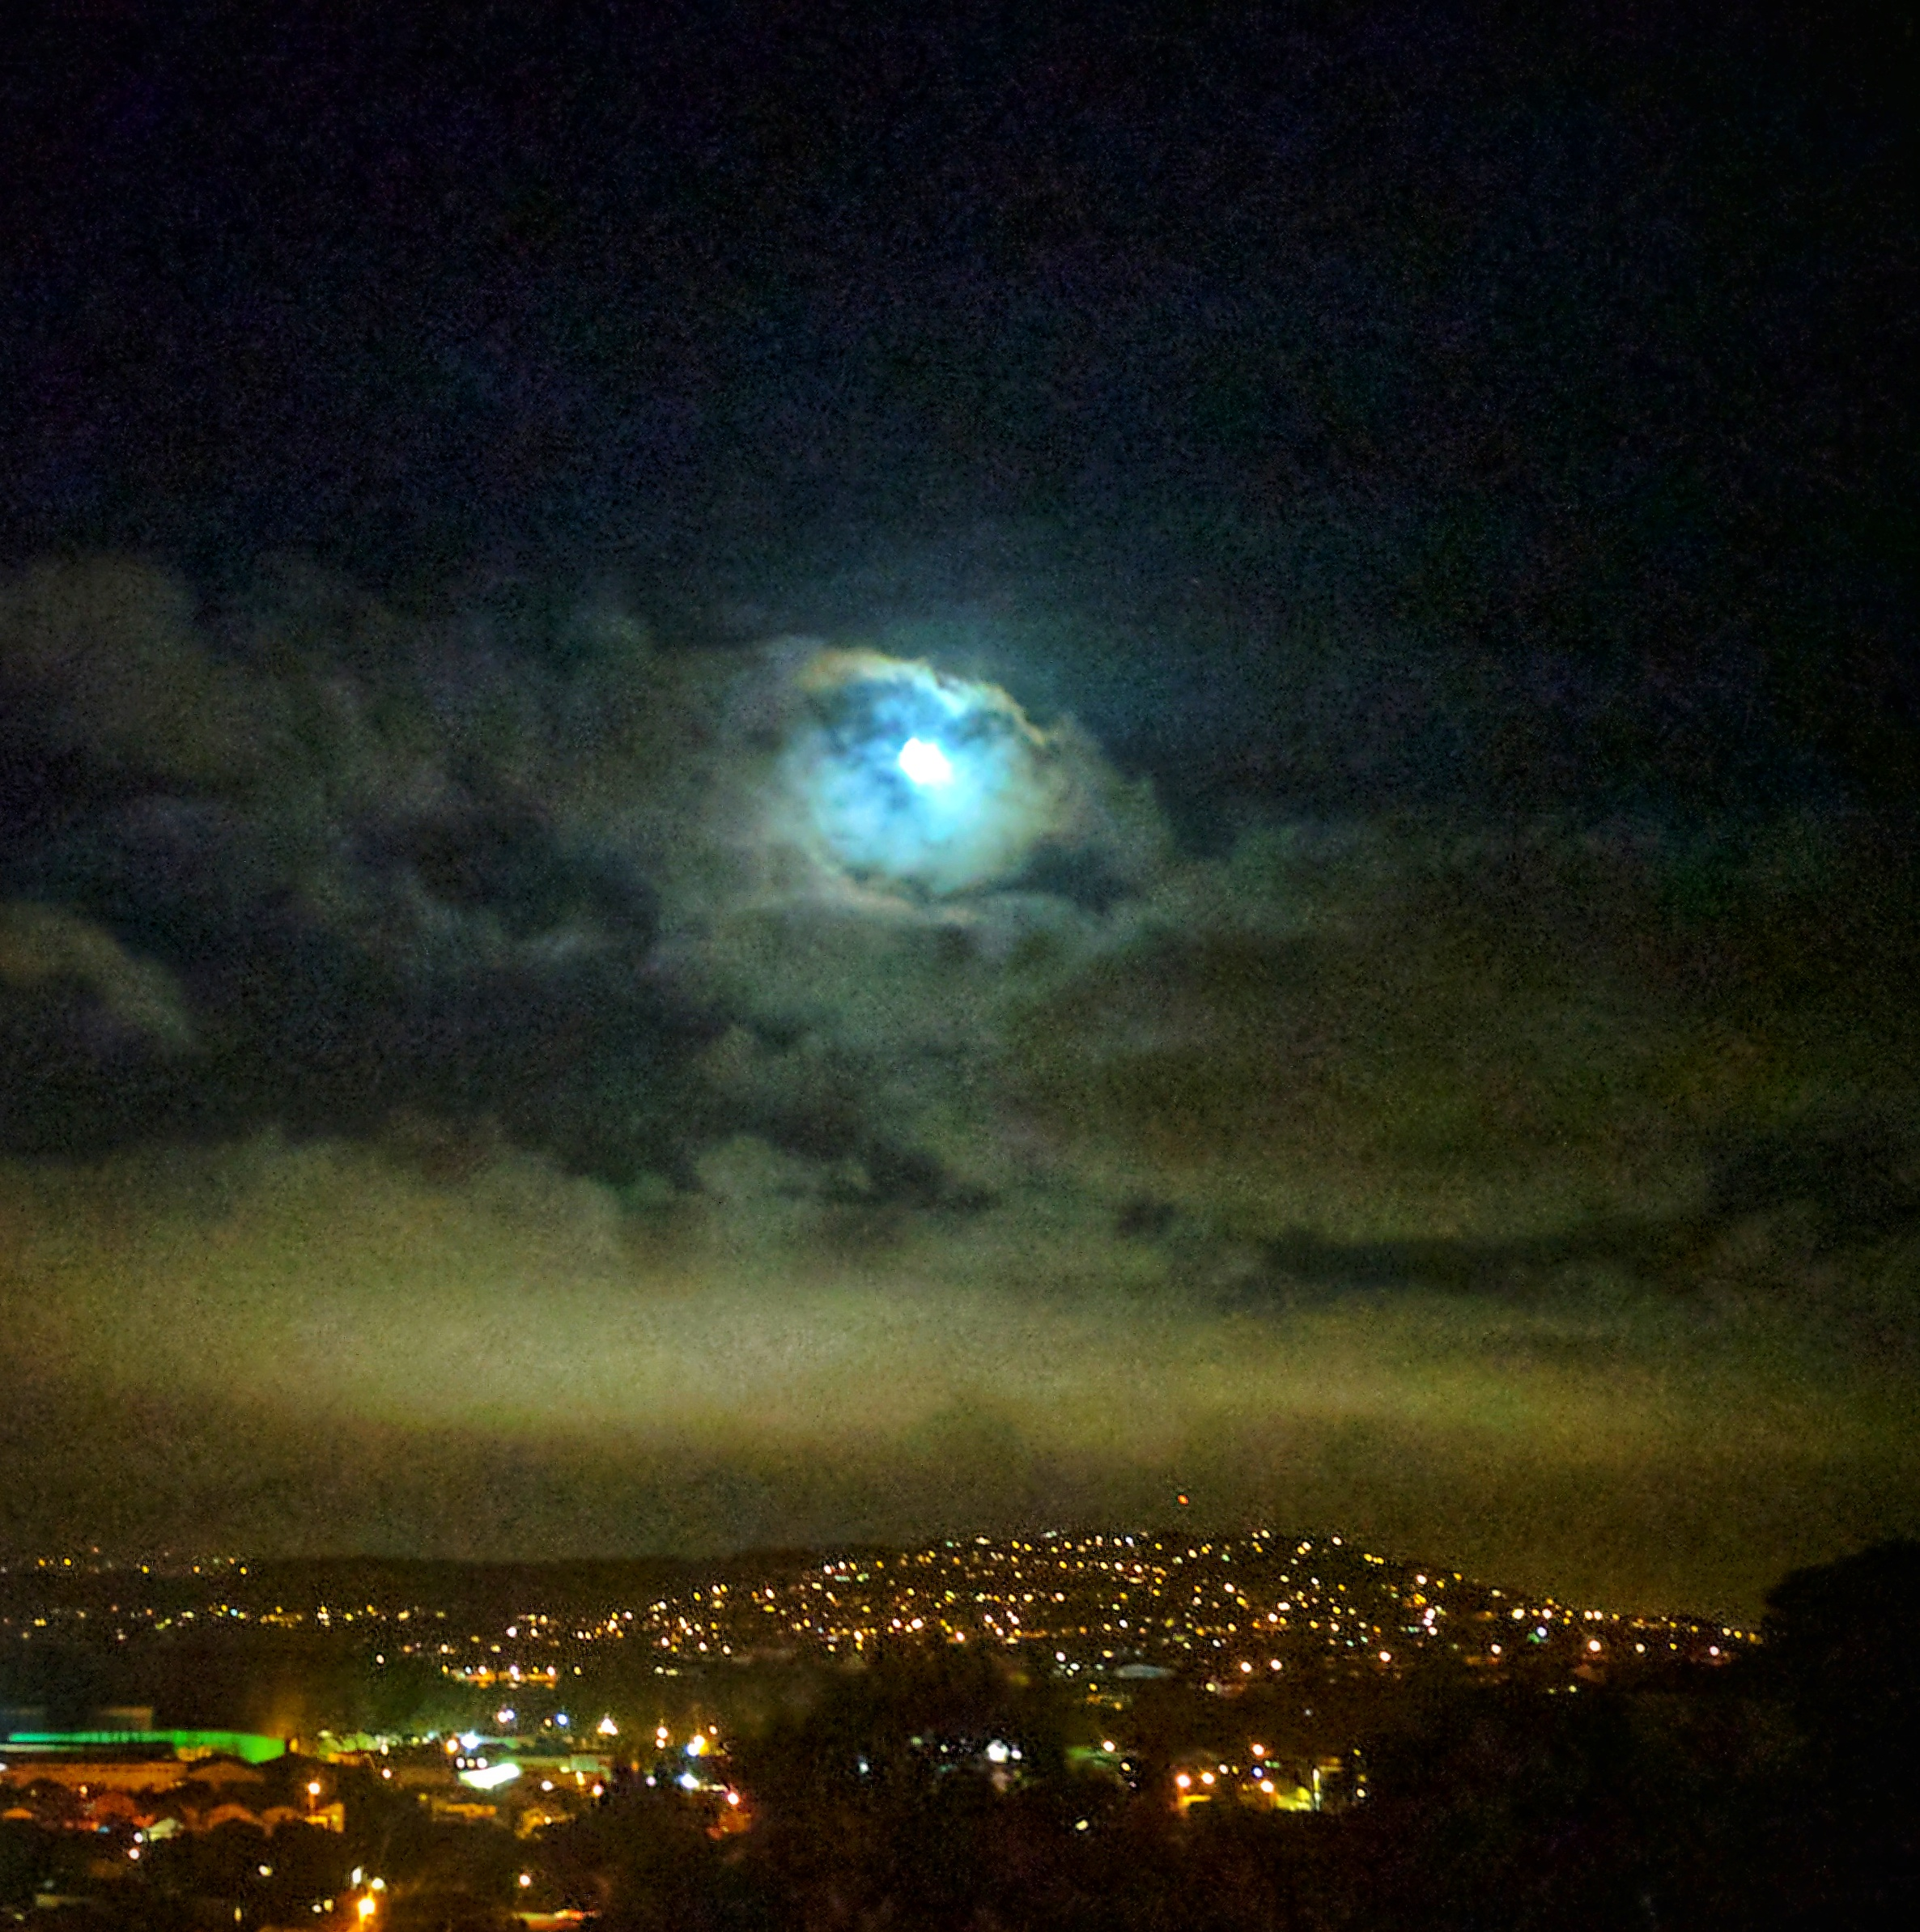 Moonlit clouds over Wellington street lights